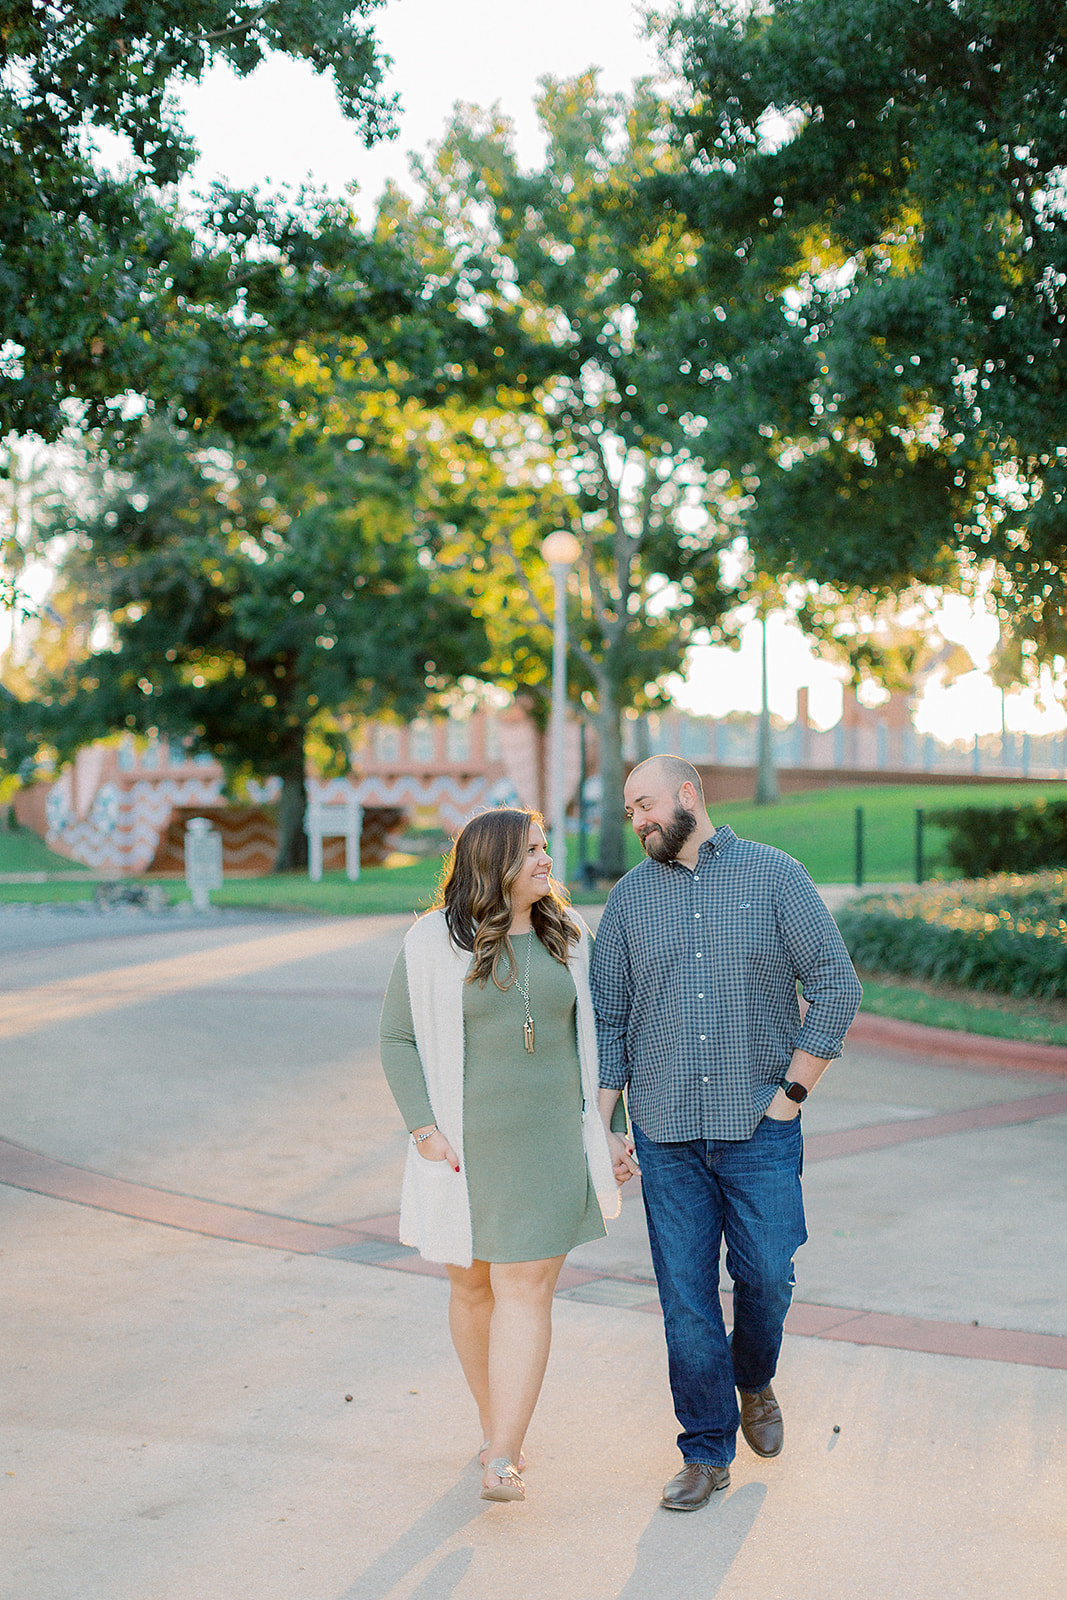 Larisa_+_Craig_Disney_Epcot_Boardwalk_Resort_Engagement_Session_Photographer_Casie_Marie_Photography-85